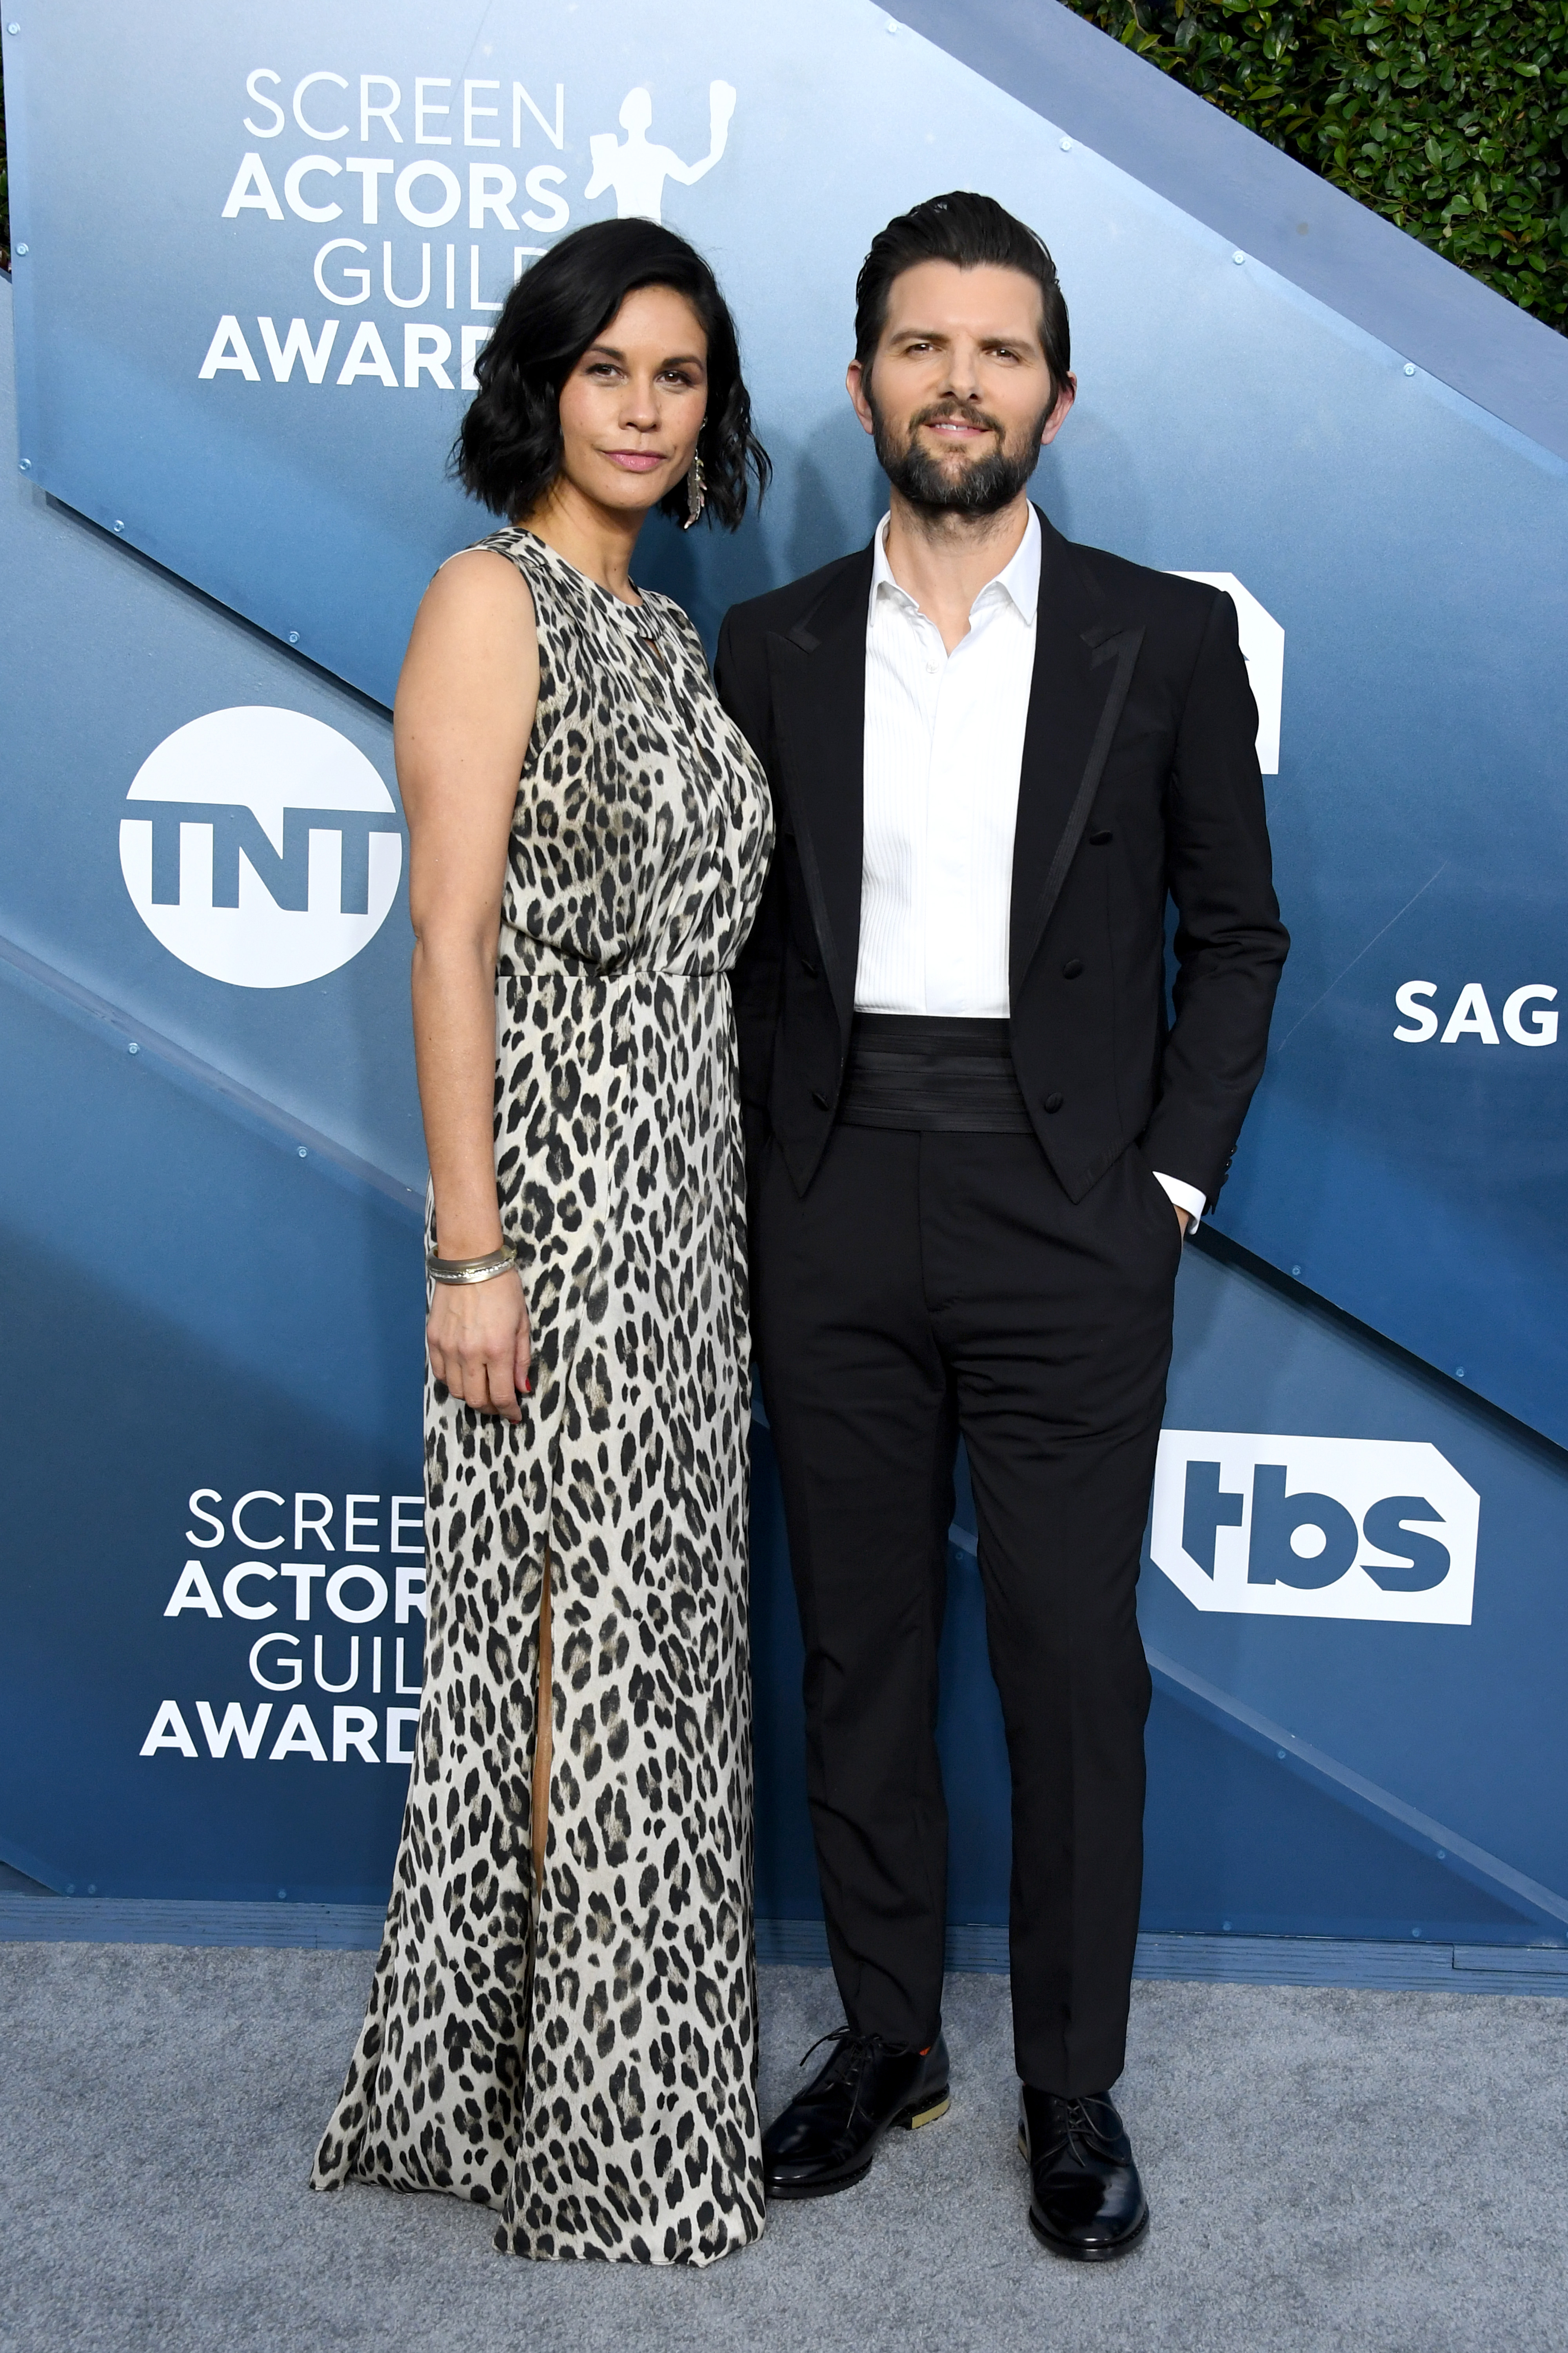 LOS ANGELES, CALIFORNIA - JANUARY 19: (L-R) Naomi Scott and Adam Scott attend the 26th Annual Screen ActorsGuild Awards at The Shrine Auditorium on January 19, 2020 in Los Angeles, California. (Photo by Jon Kopaloff/Getty Images)